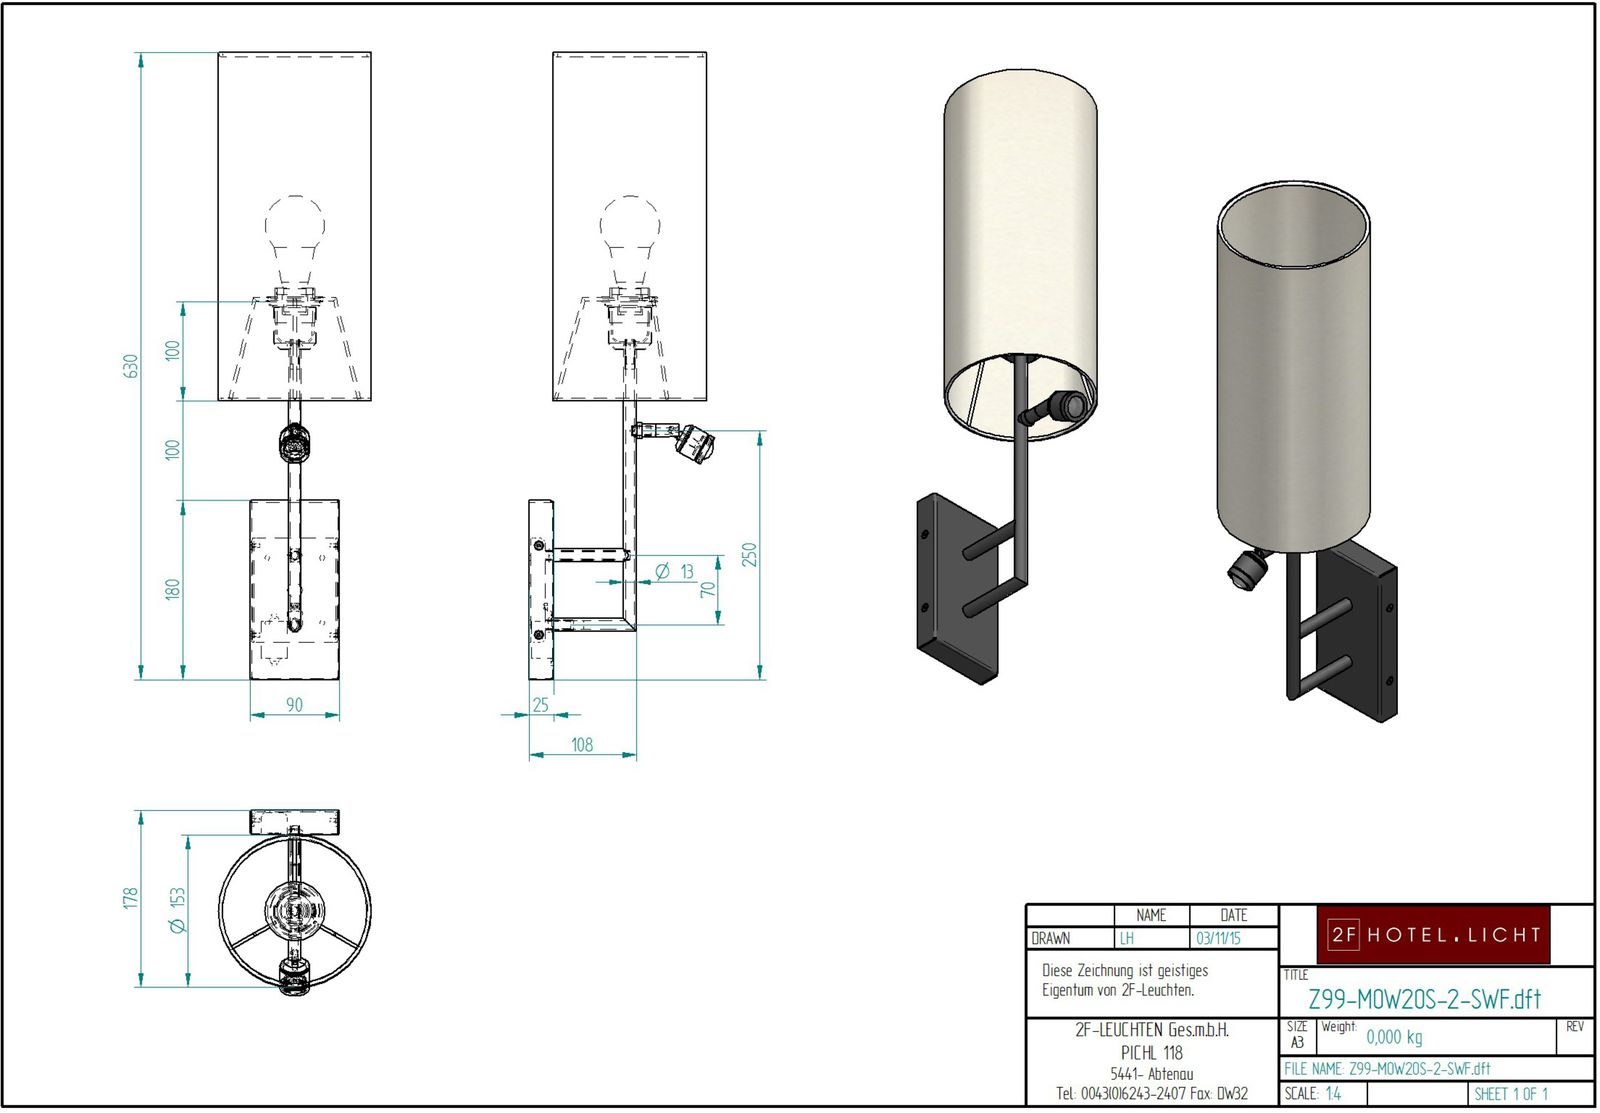 wall lamp, height=425mm, wide=240mm, surface: polished brass, technical details: 1xE27 60W